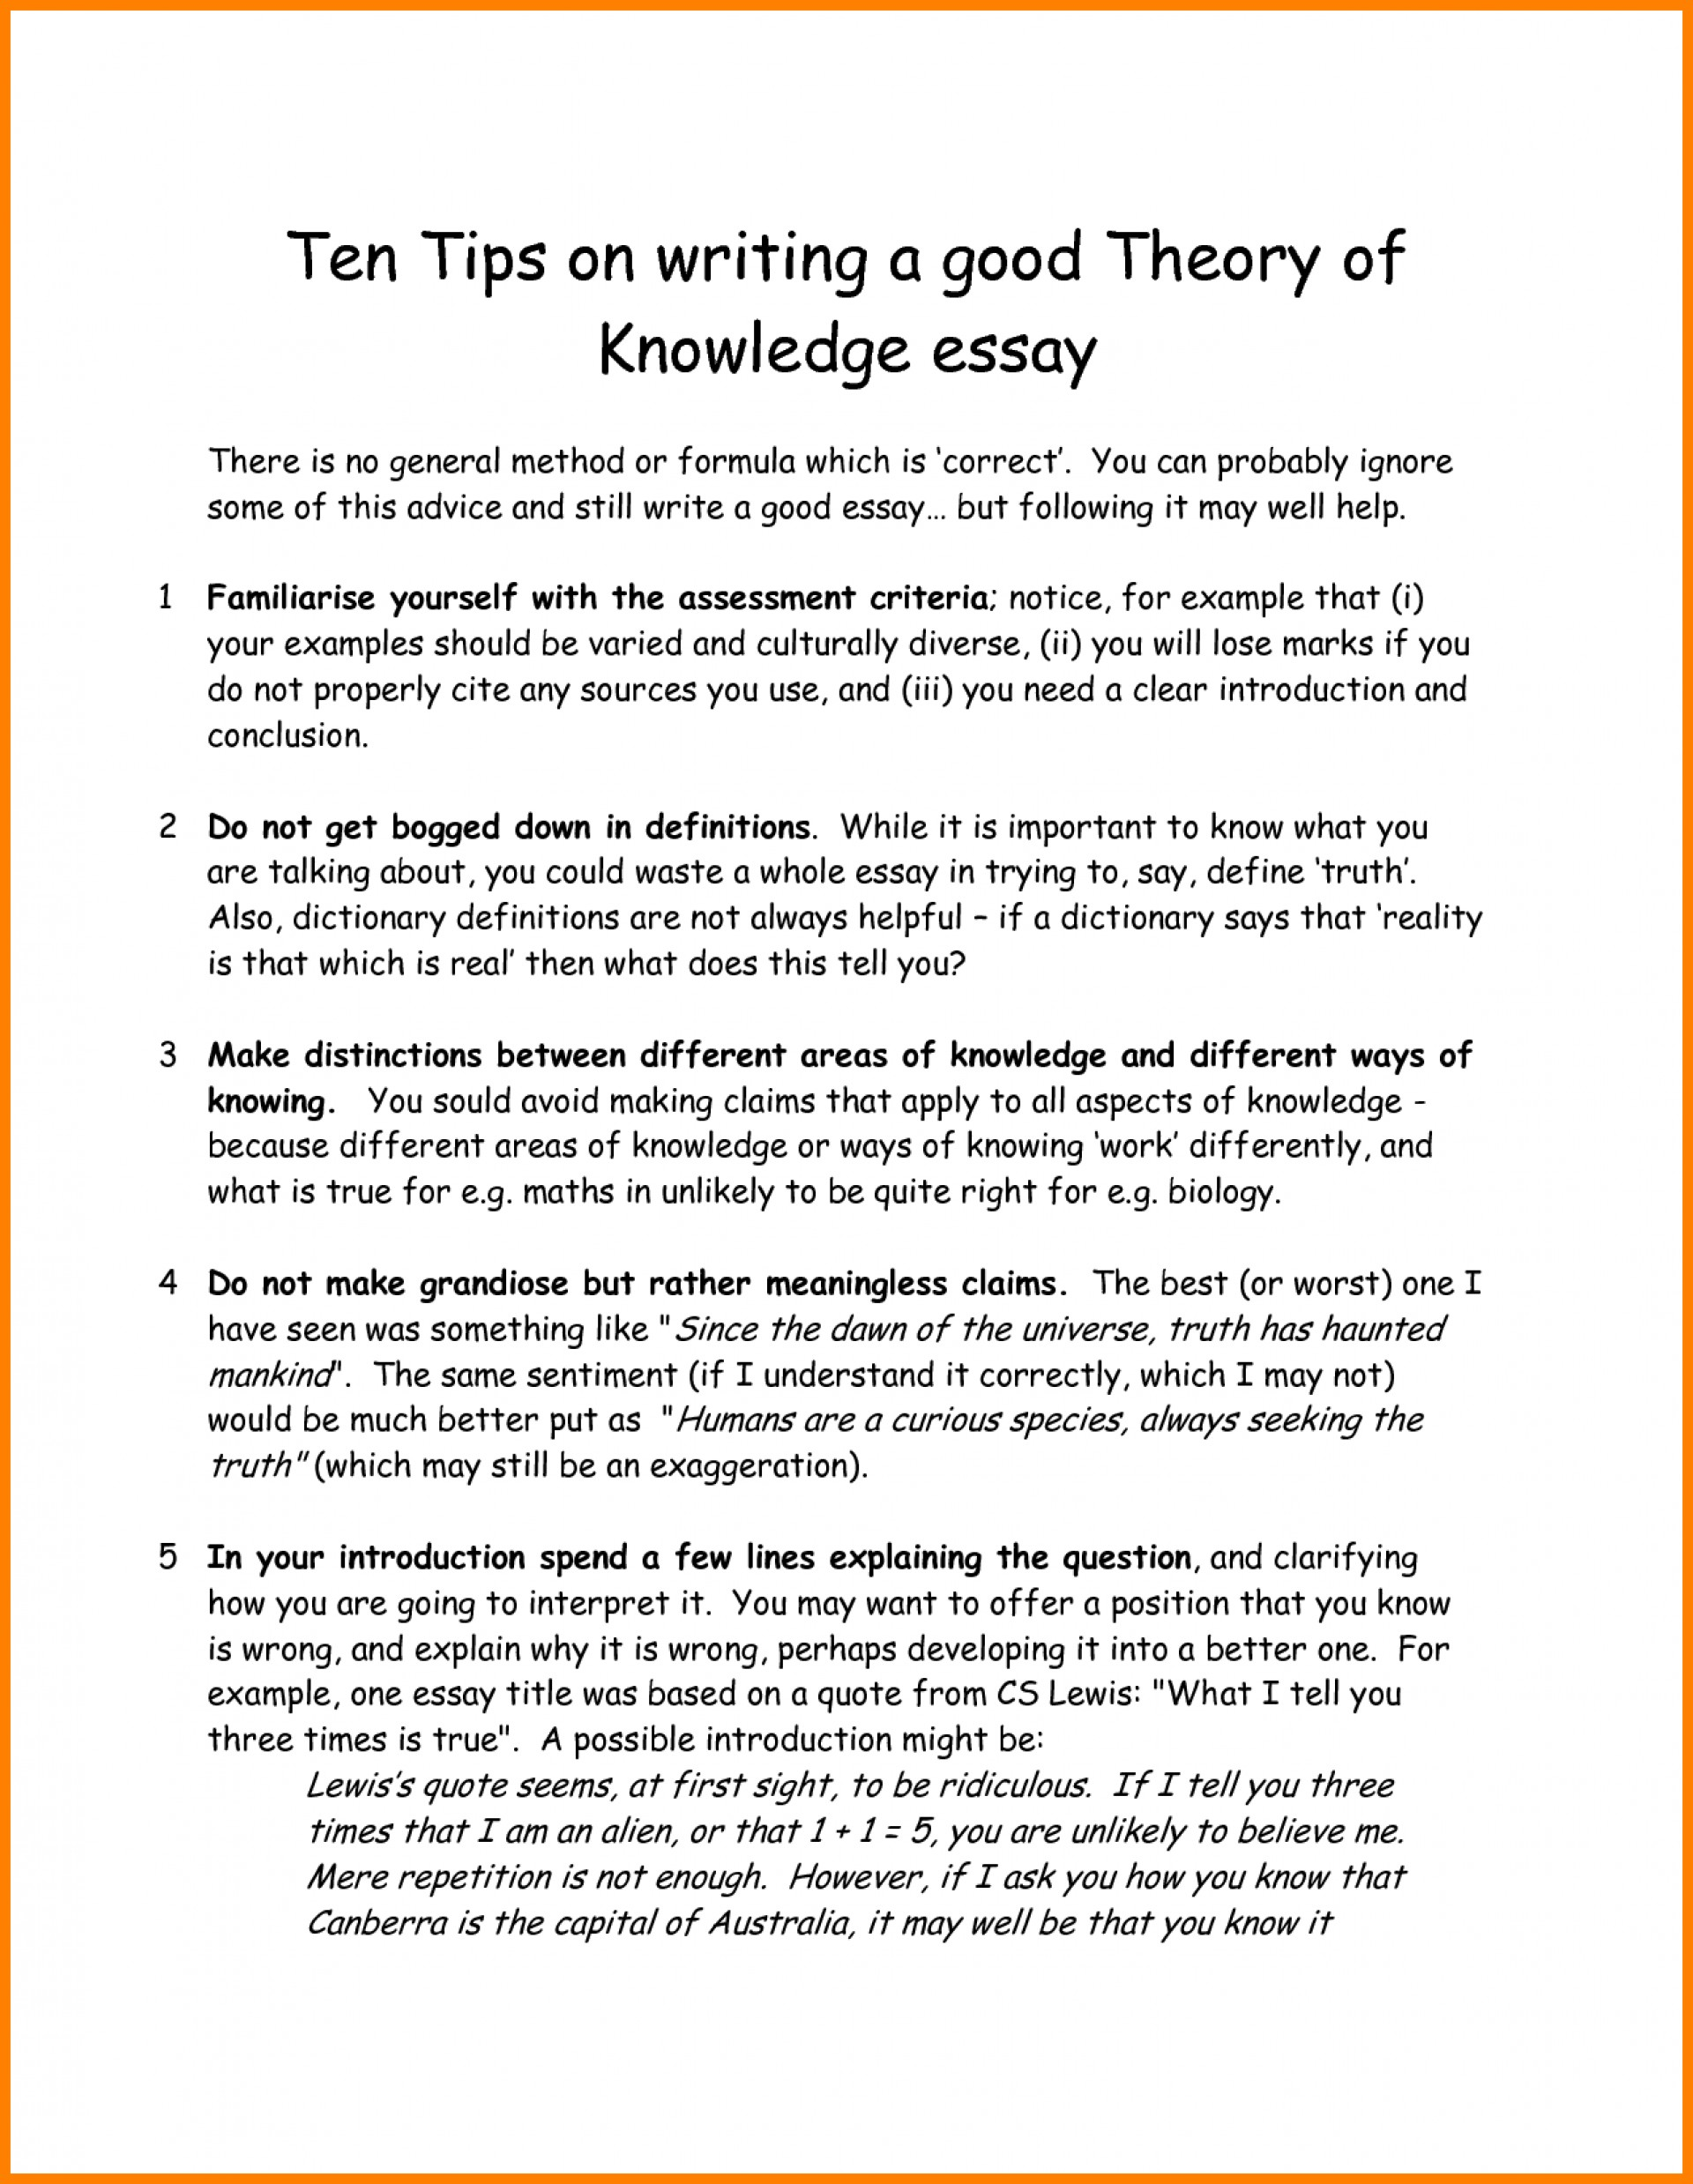 001 Essay Example Good Ways To Start English The Paragraph How An Observation Examples Off About Yourself Ledger Pa Informative Writing Analysis Conclusion Academic Application Striking Way A Book Racism Different 1920